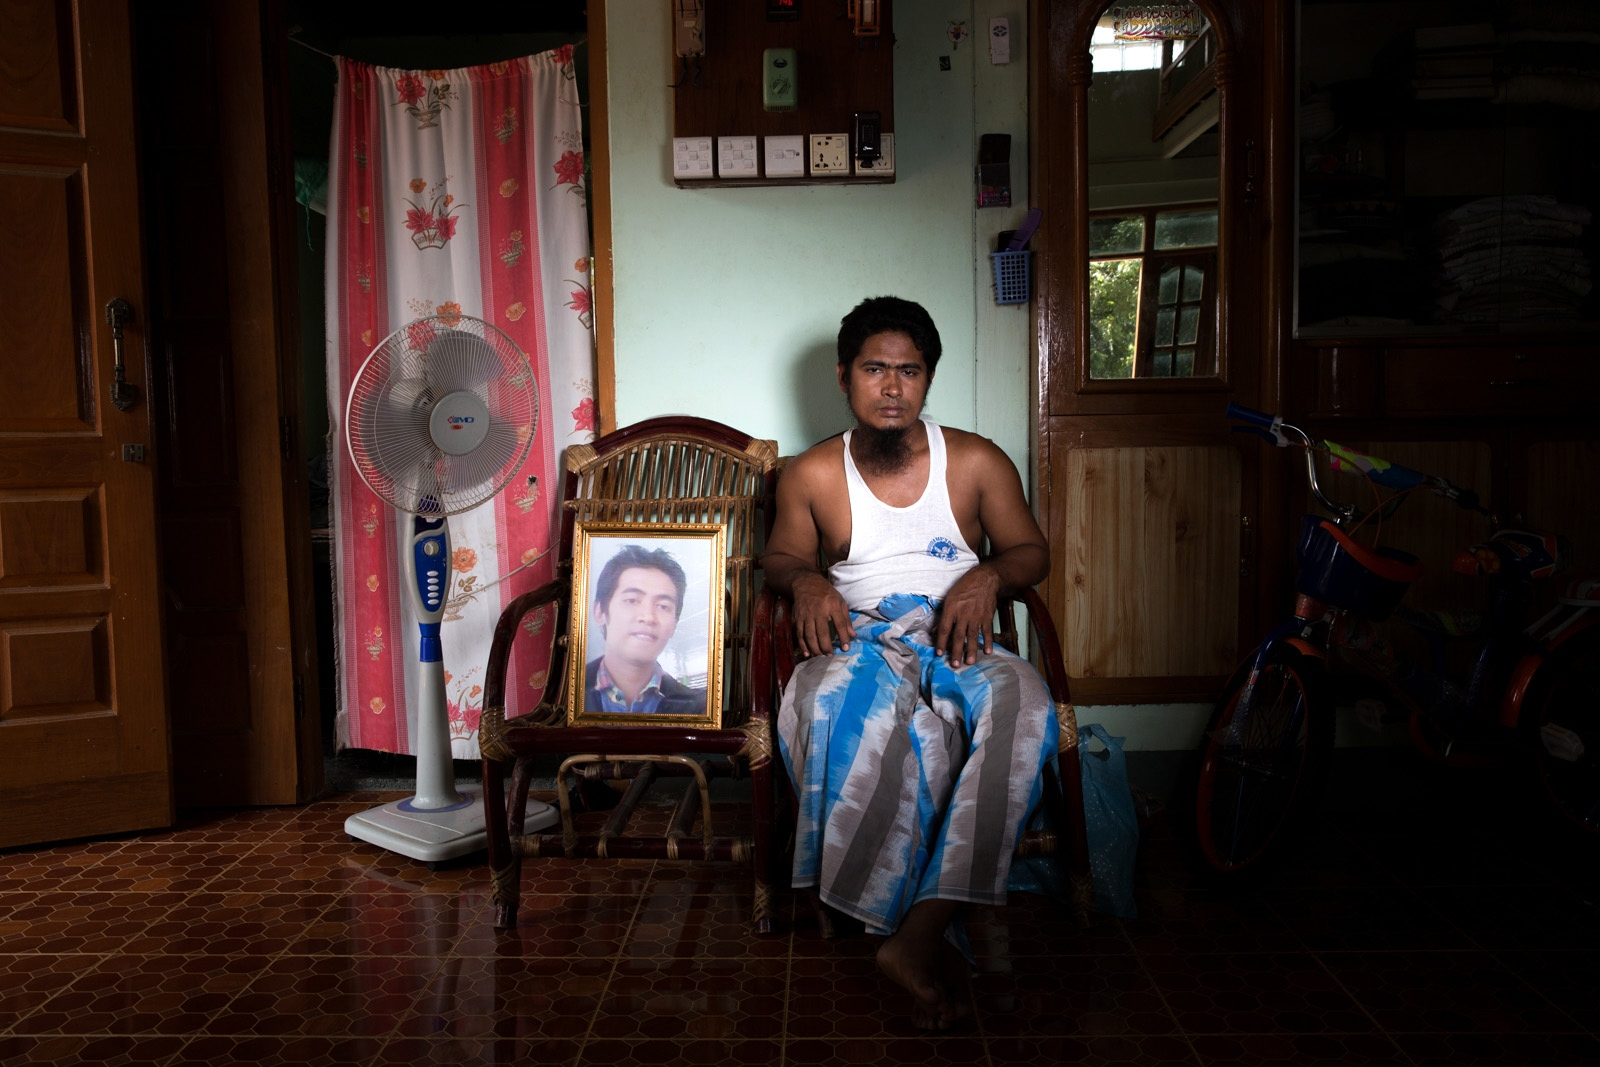 Brother of arbitrarily detained Myo Min Htun, 24, awaits his return. Myanmar military intelligence arrested Myo Min Htun, while he was traveling with his family to attend his cousin's wedding in Kunhein, Shan State on August 4, 2014. On January 12, 2015, the Taunggyi District Court sentenced him in a trial that failed to meet fair trial standards to 14 years' imprisonment with hard labor under sections 5(J) and 5(L) of the 1950 Emergency Provisions Act. In October 2016, the Myanmar government repealed the notoriously controversial 1950 Emergency Provisions Act, yet Myo Min Htun remains detained in Myaung Mya prison under the now defunct Act.